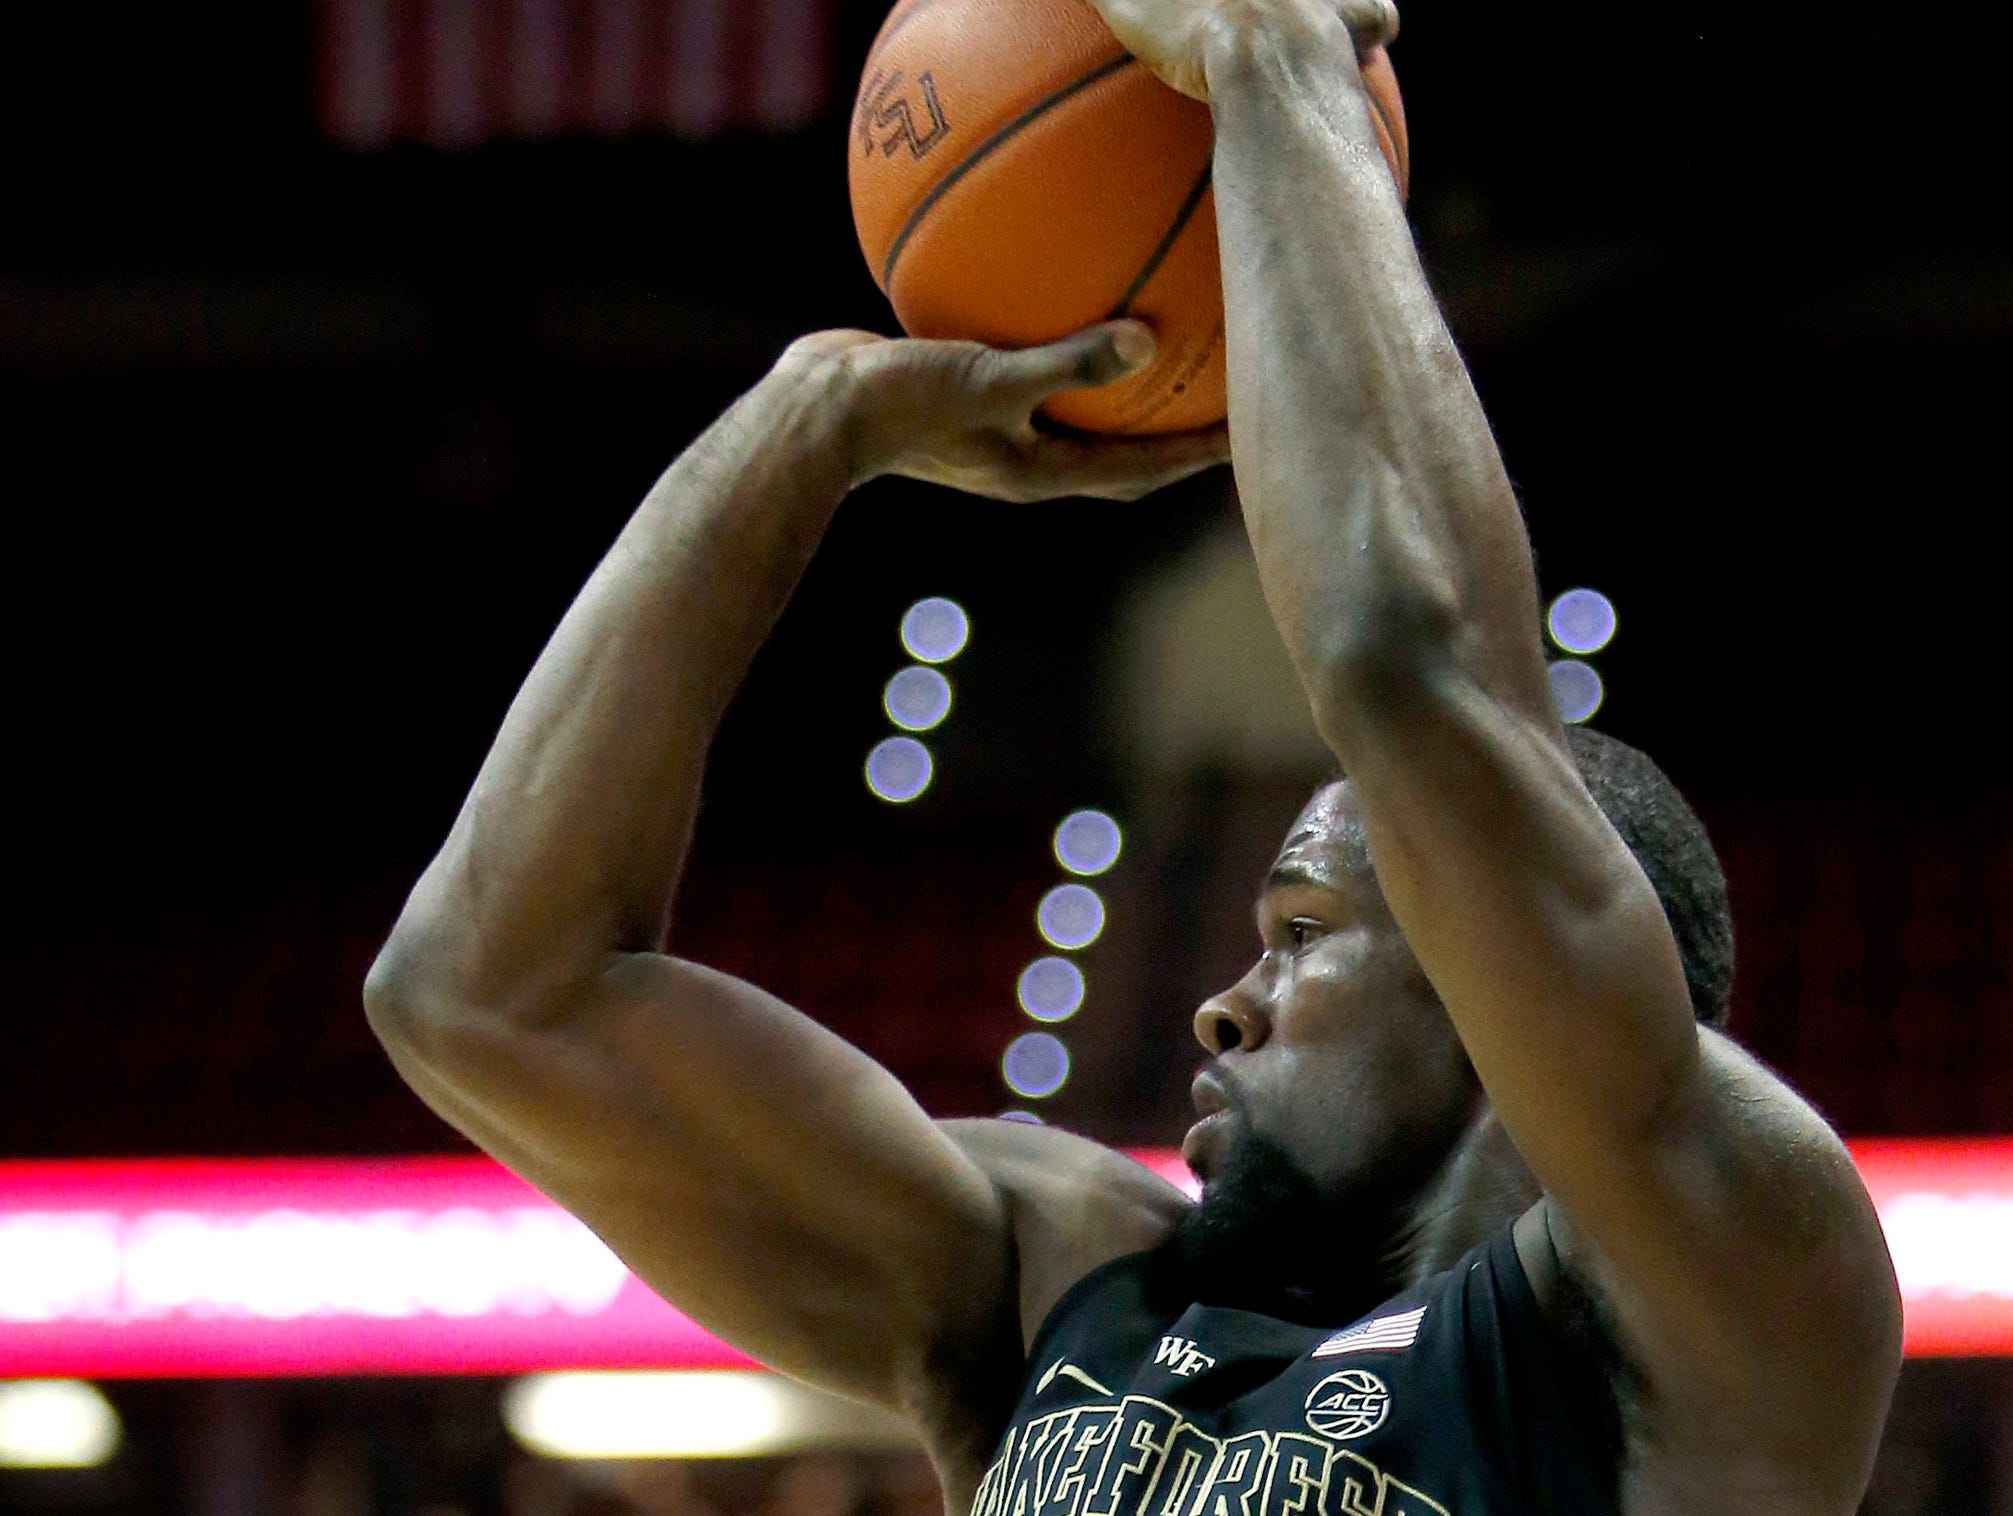 Feb 13, 2019; Tallahassee, FL, USA; Wake Forest Demon Deacons guard Chaundee Brown (23) shoots the ball against the Florida State Seminoles during the first half at Donald L. Tucker Center. Mandatory Credit: Glenn Beil-USA TODAY Sports